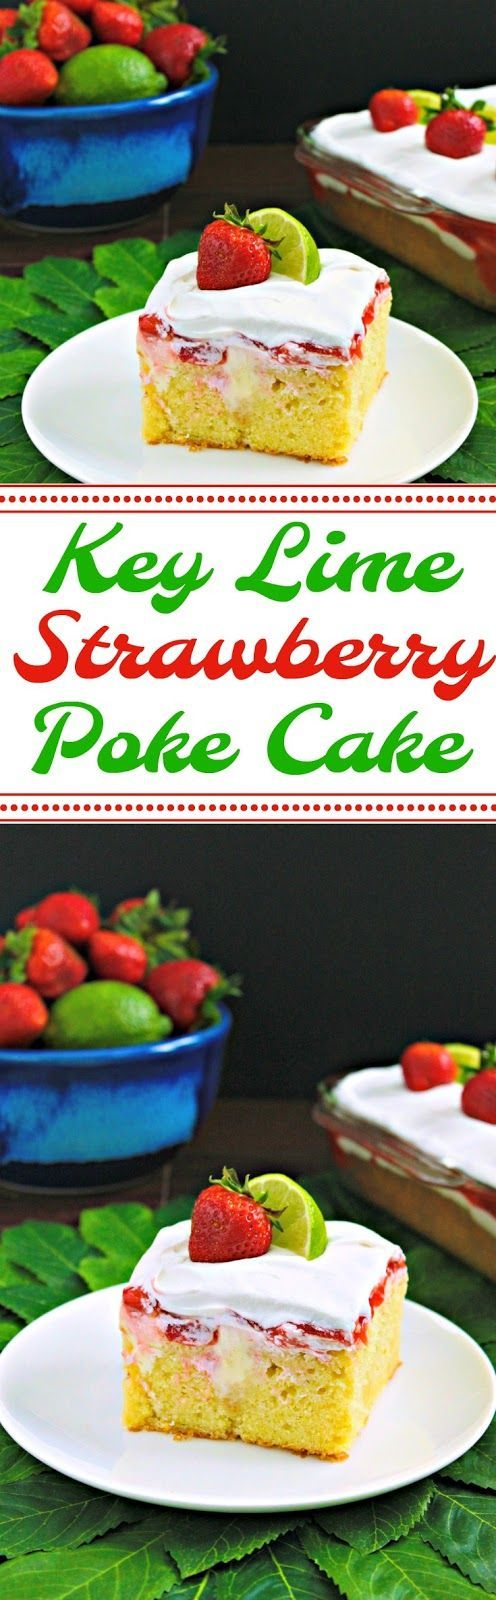 Key Lime Strawberry Poke Cake from LoveandConfections.com #sponsored @dixiecrystals